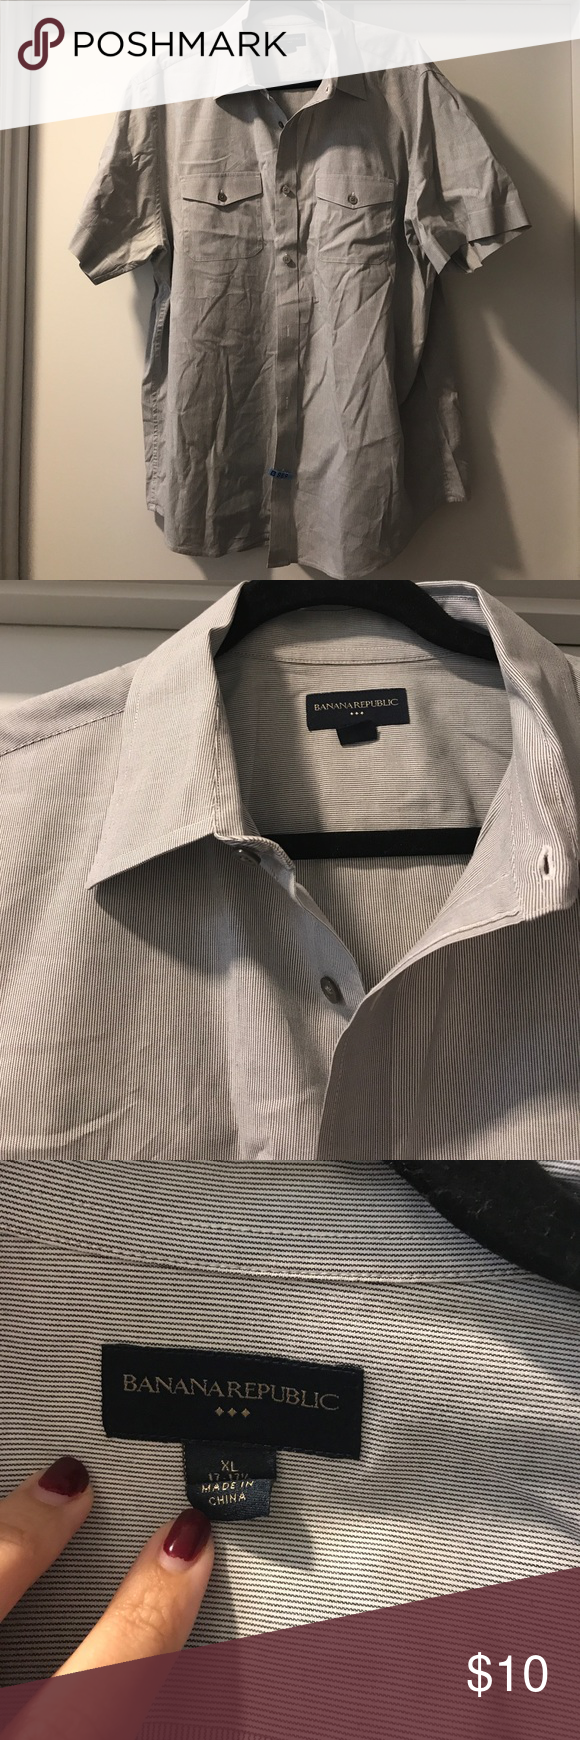 XL Banana Republic Top! Little wrinkly but a great short sleeve Button Up!! In perfect condition! Banana Republic Shirts Casual Button Down Shirts